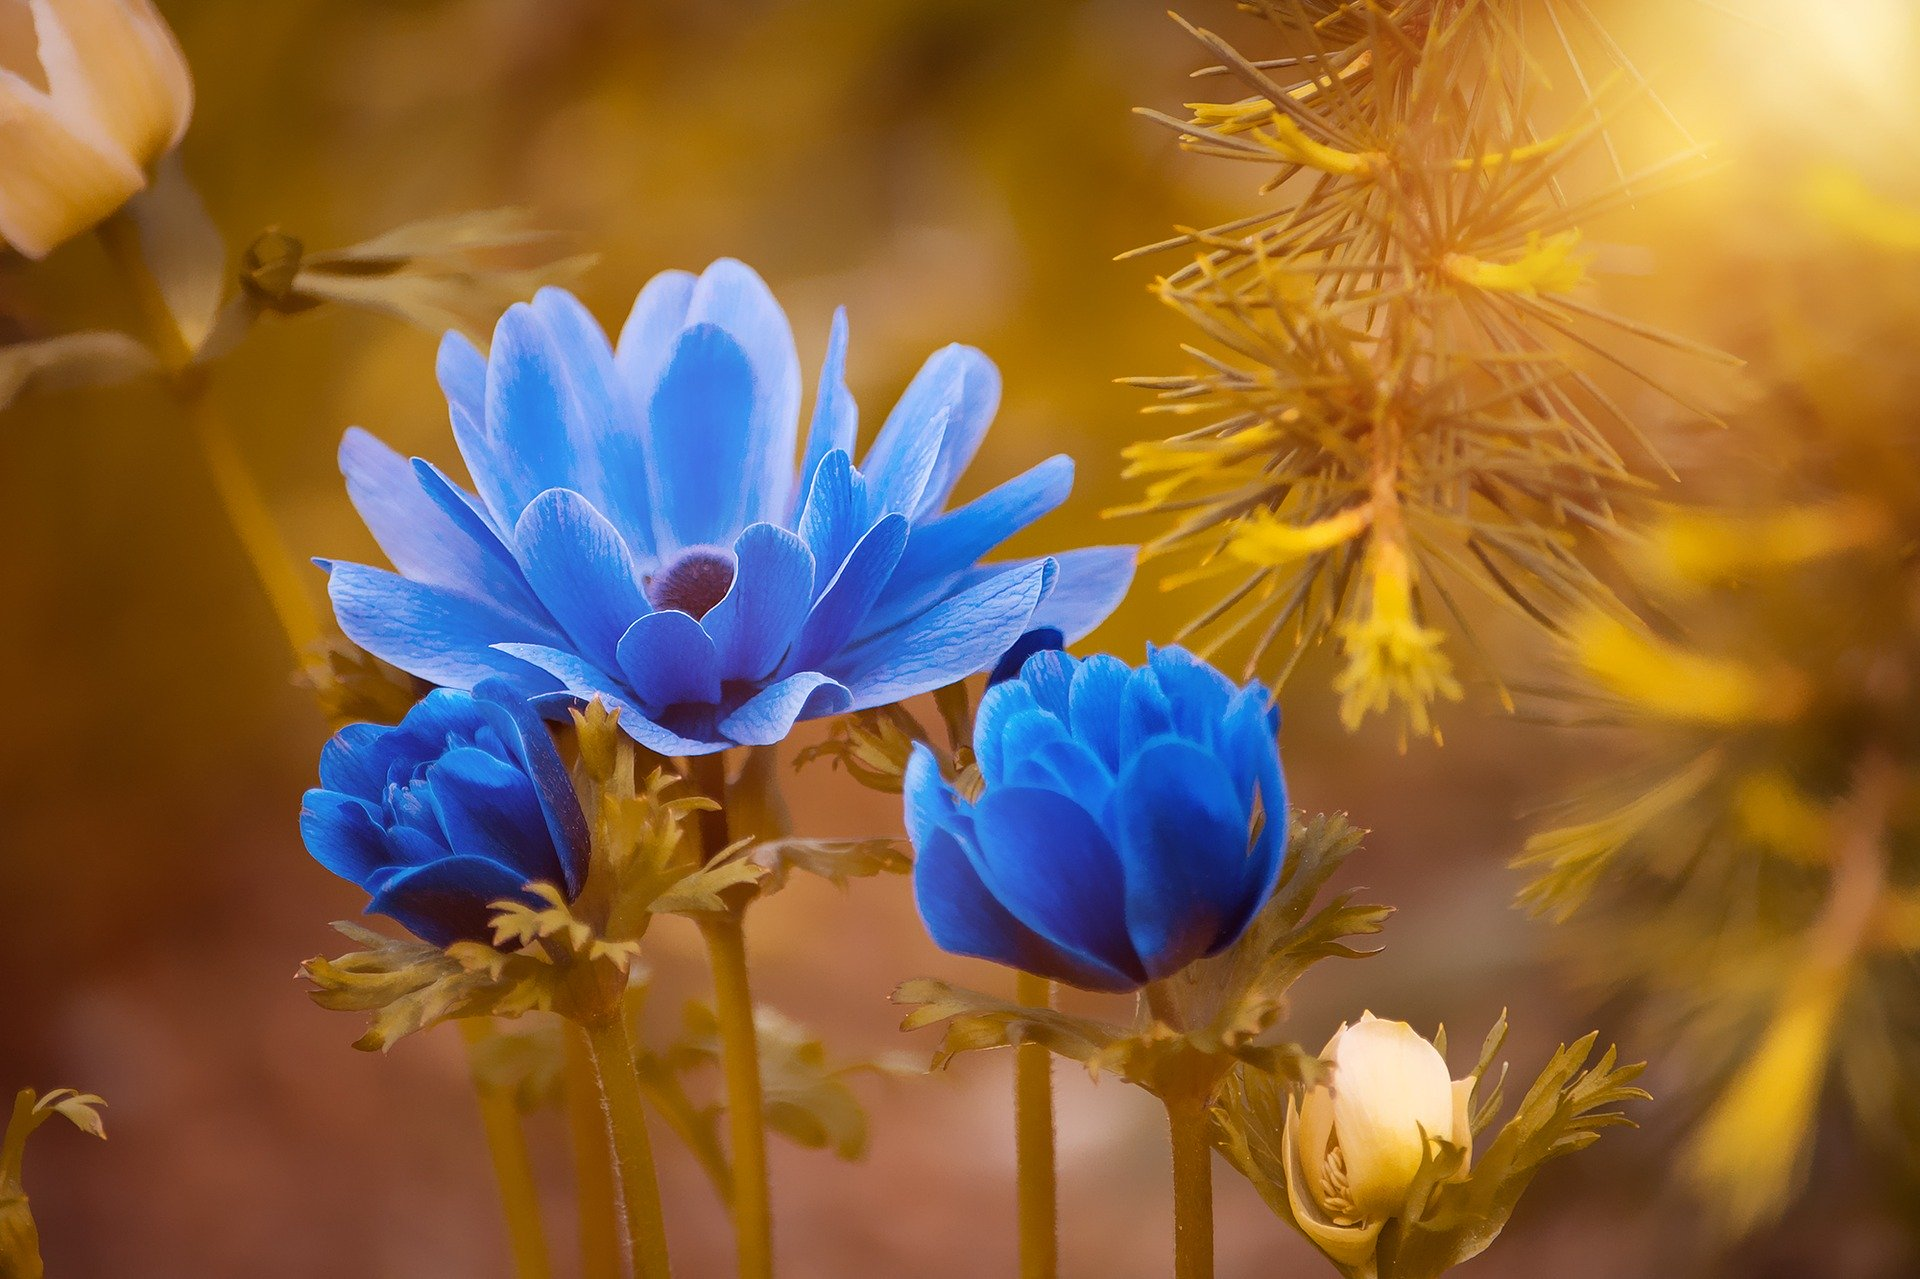 Three blue flowers surrounded by yellow and orange plants.